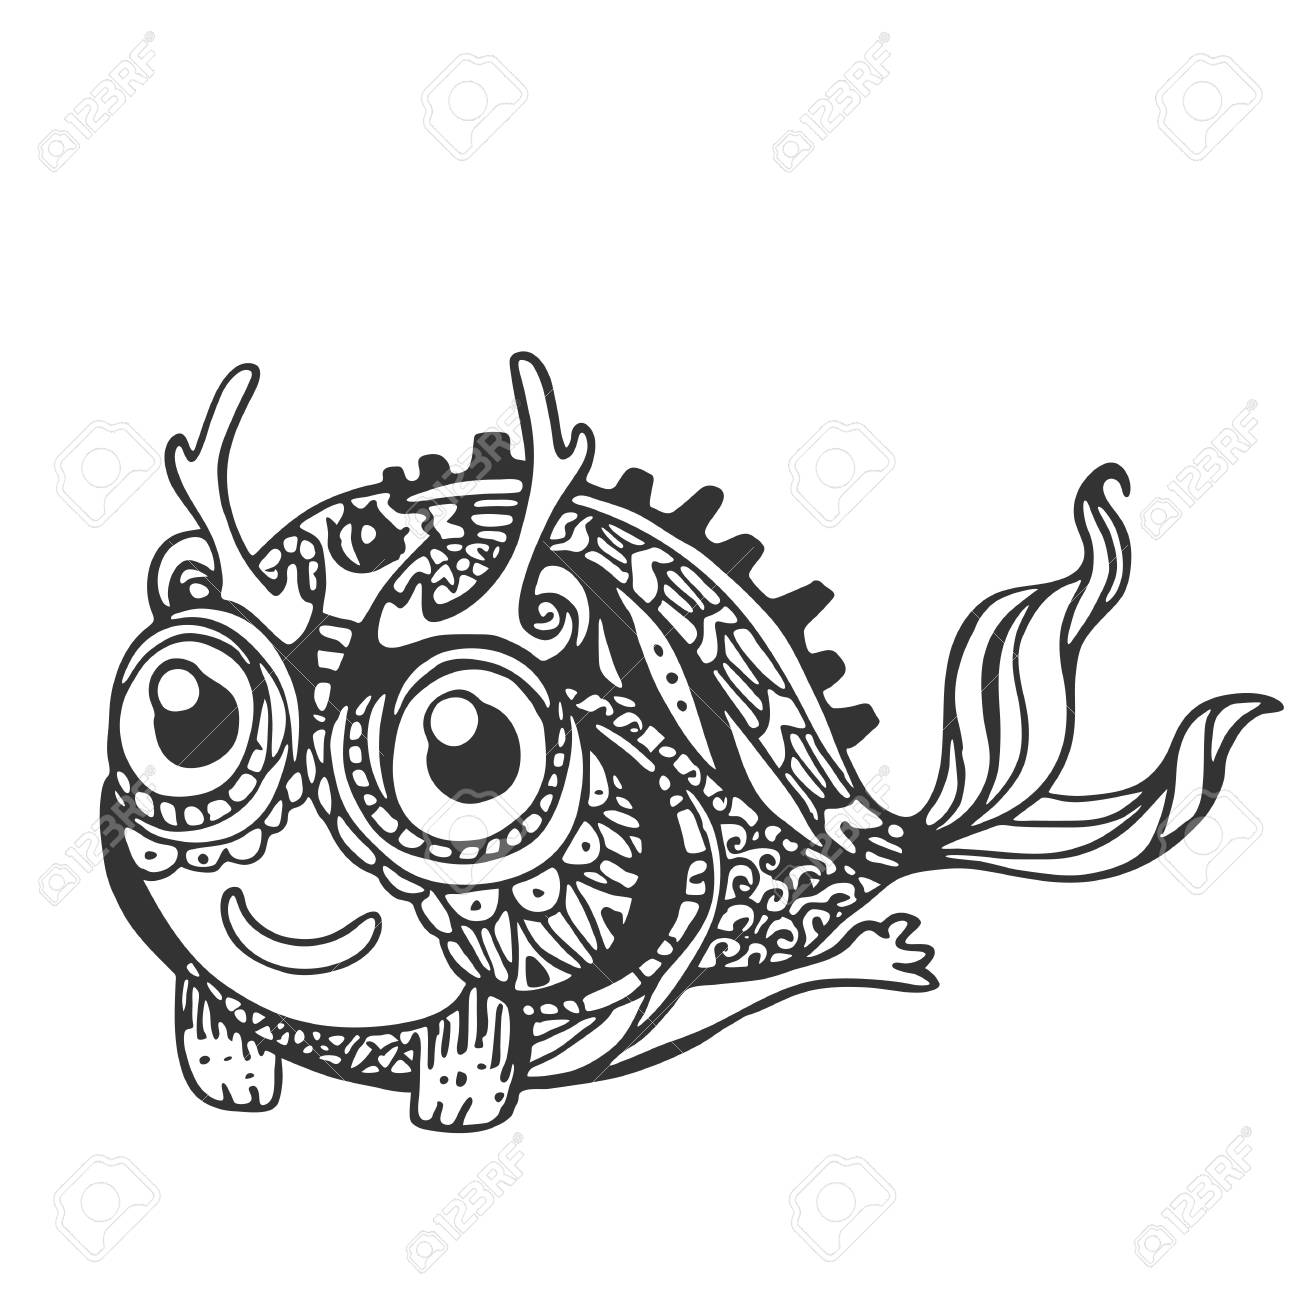 1300x1300 Decorative Stylized Mystical Creatures, Drawing By Hand. Vector